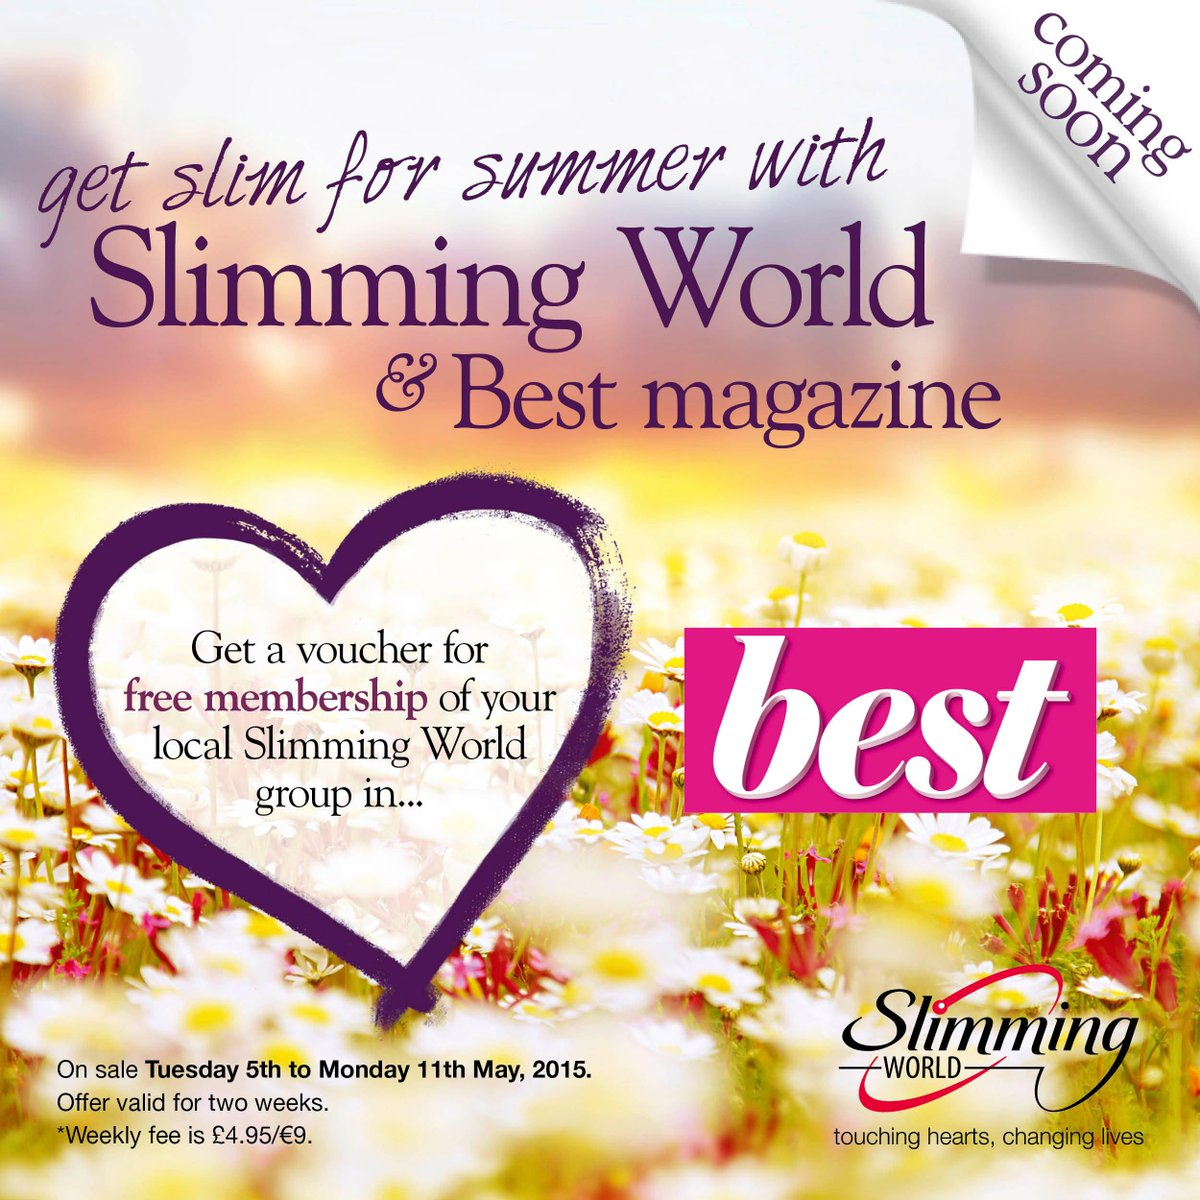 Victoria kilpatrick swomaghvictoria twitter Slimming world my account